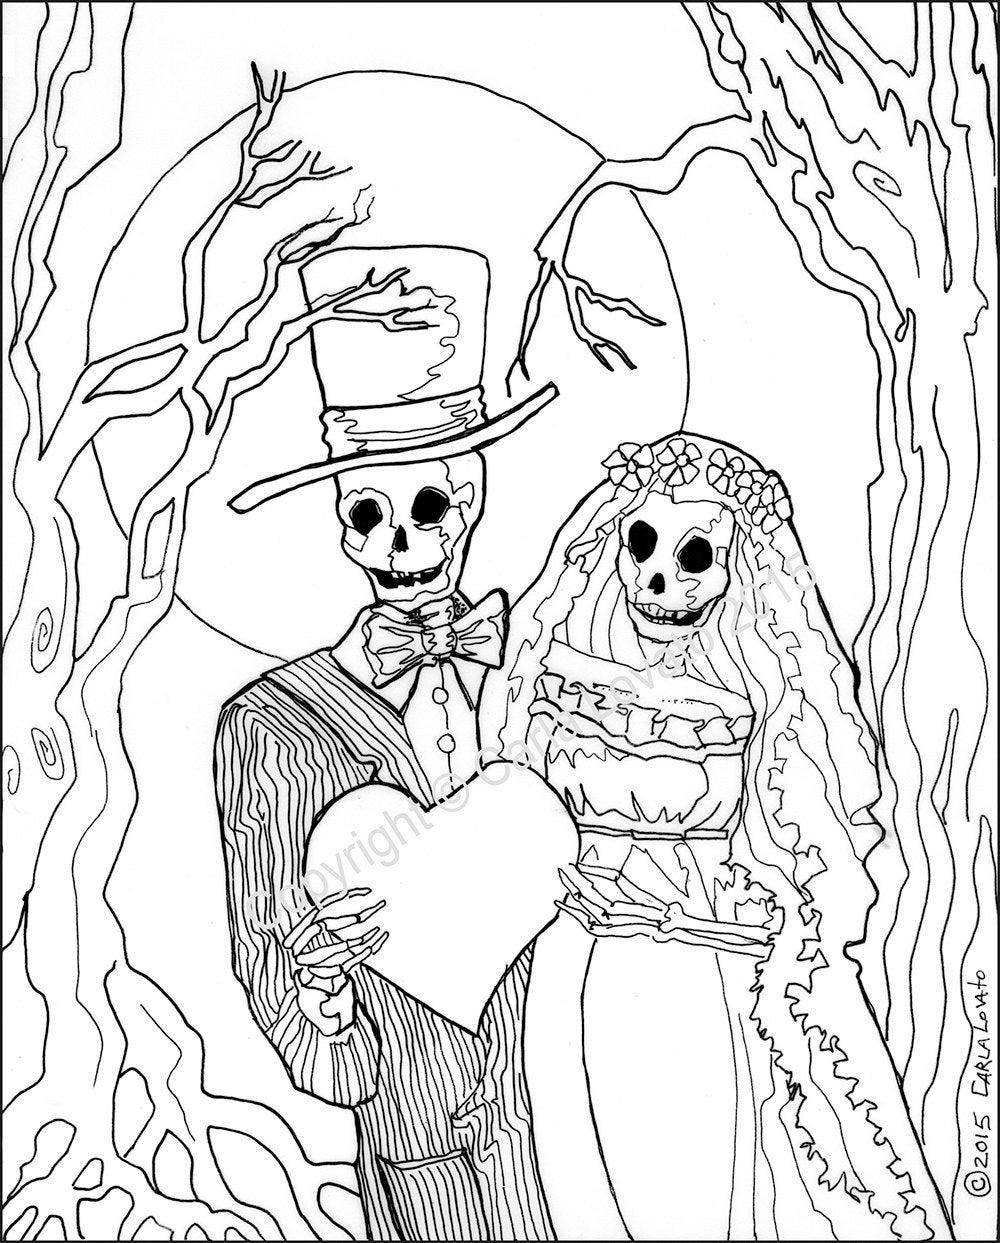 day of the dead coloring page free printable day of the dead coloring pages best dead day of coloring page the